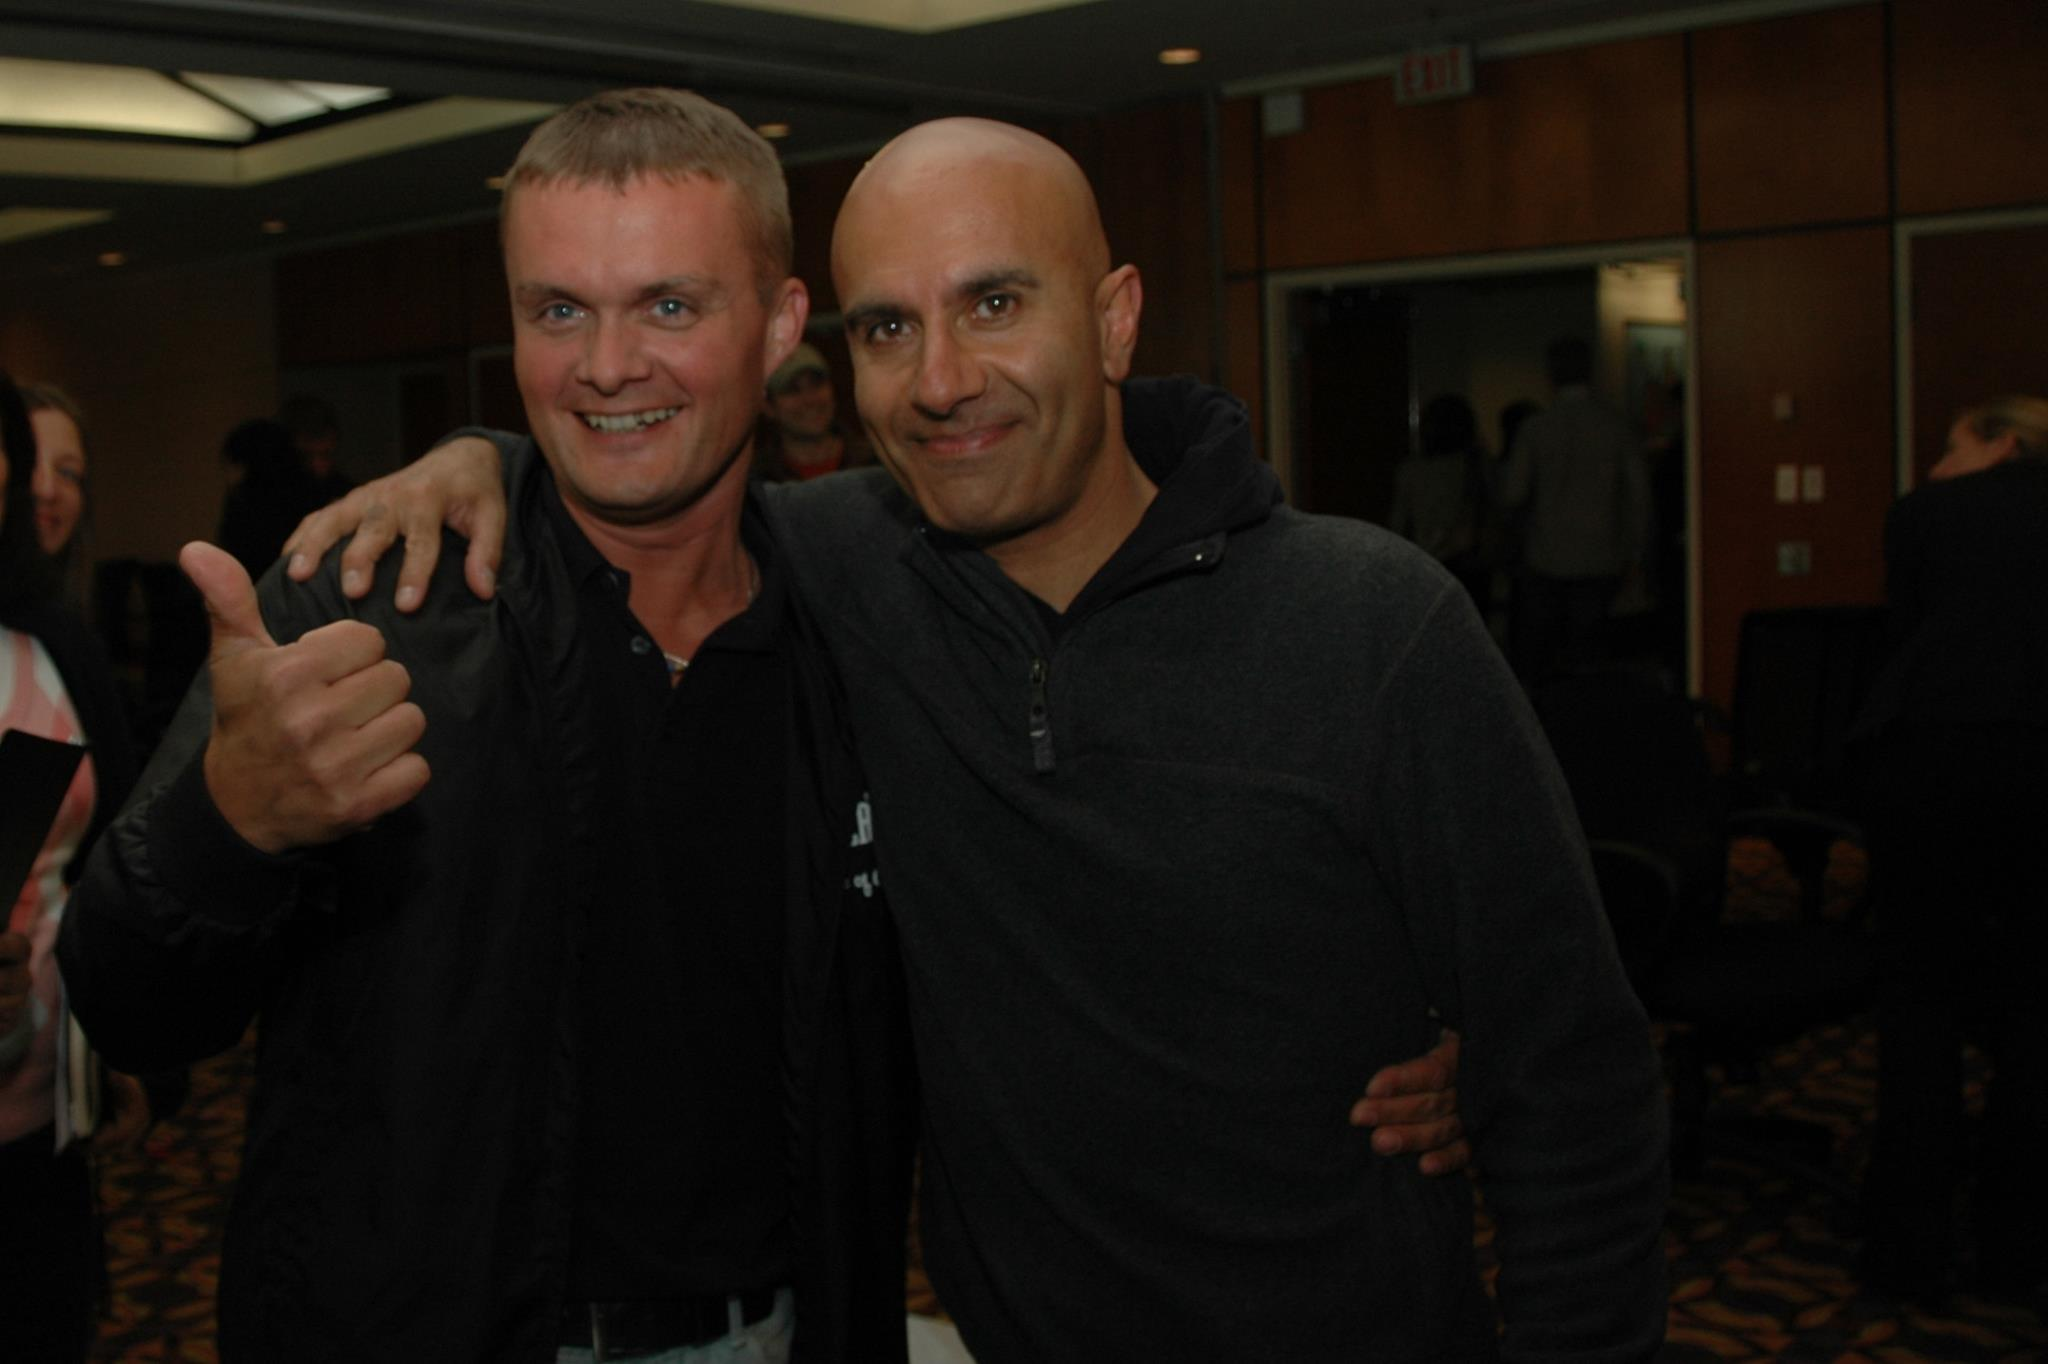 Anti Roosiaas ja Robin Sharma